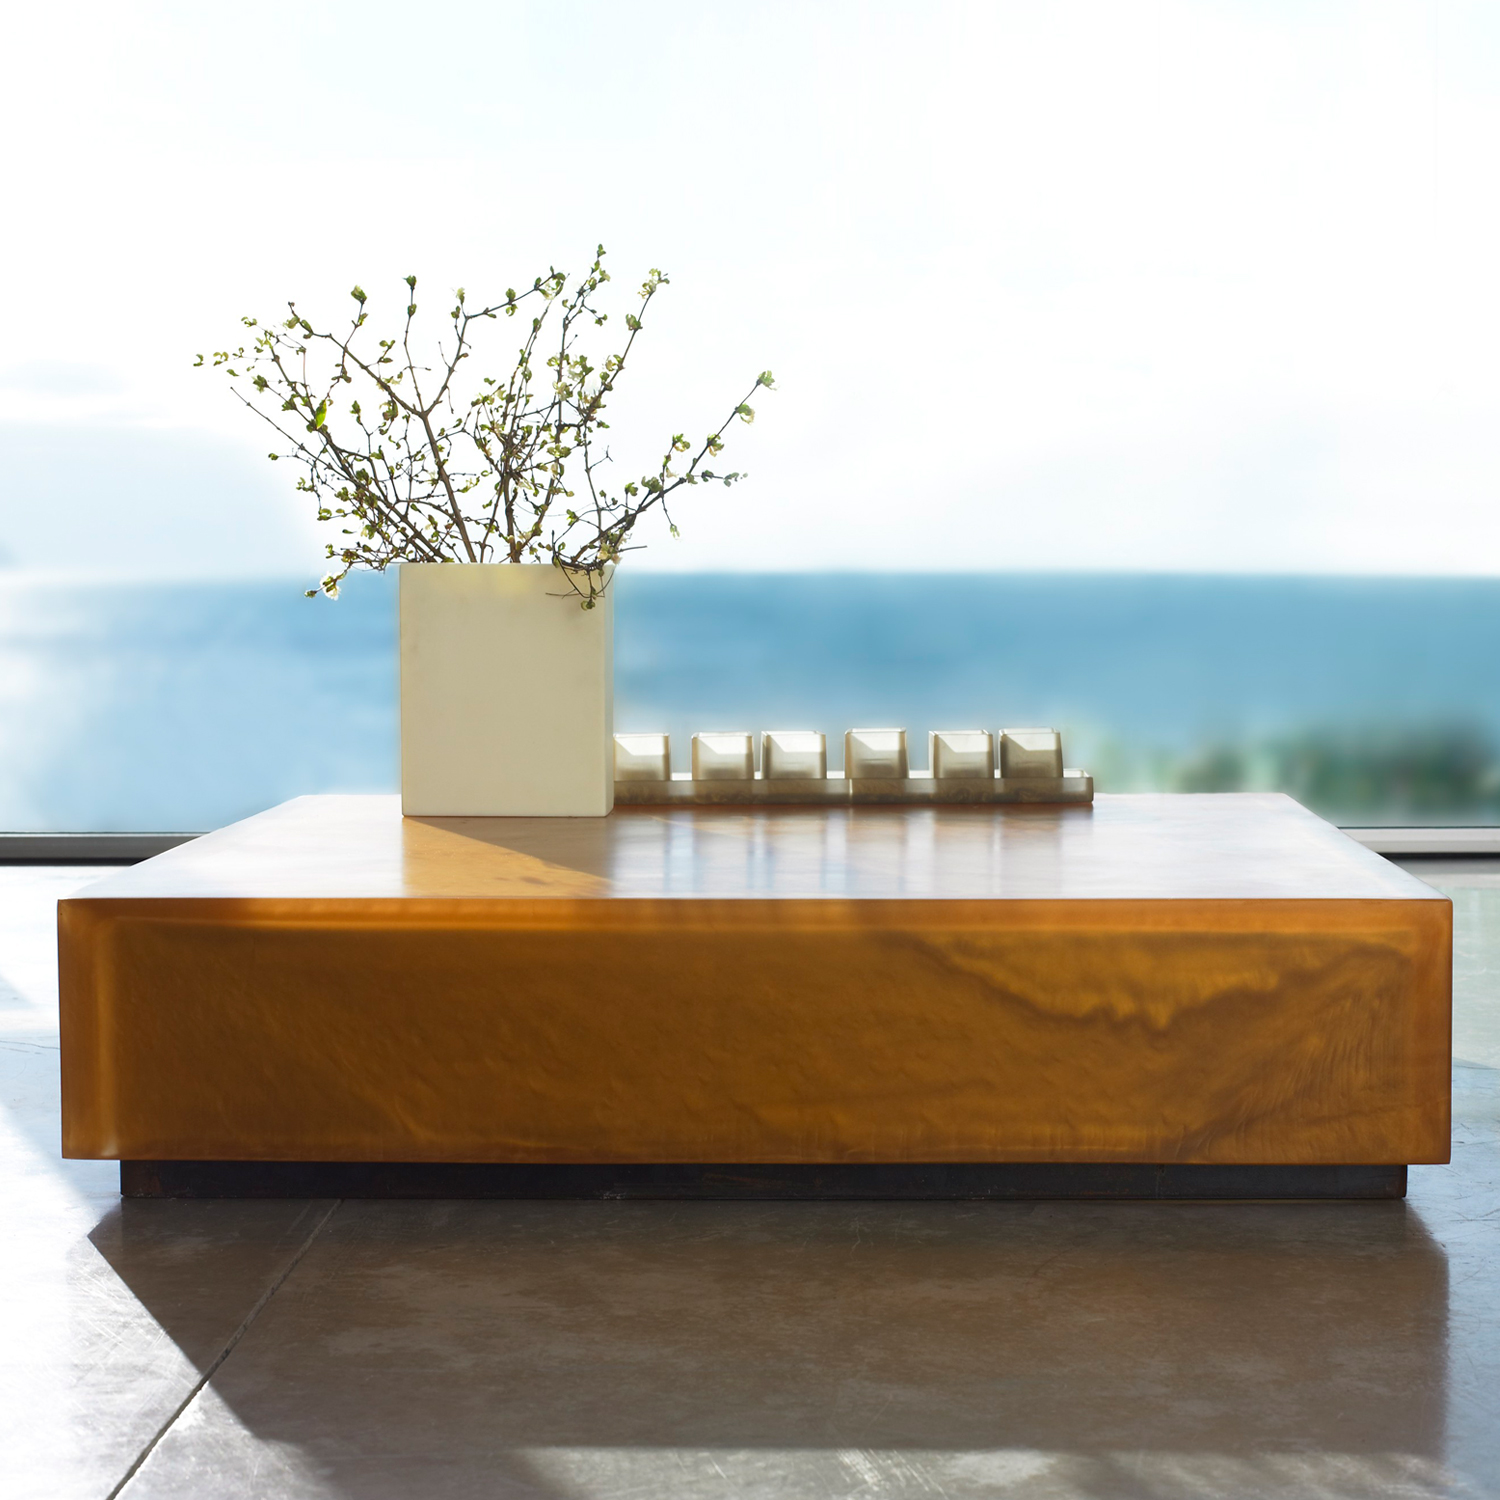 FLOATING SQUARE AND RECTANGULAR TABLE